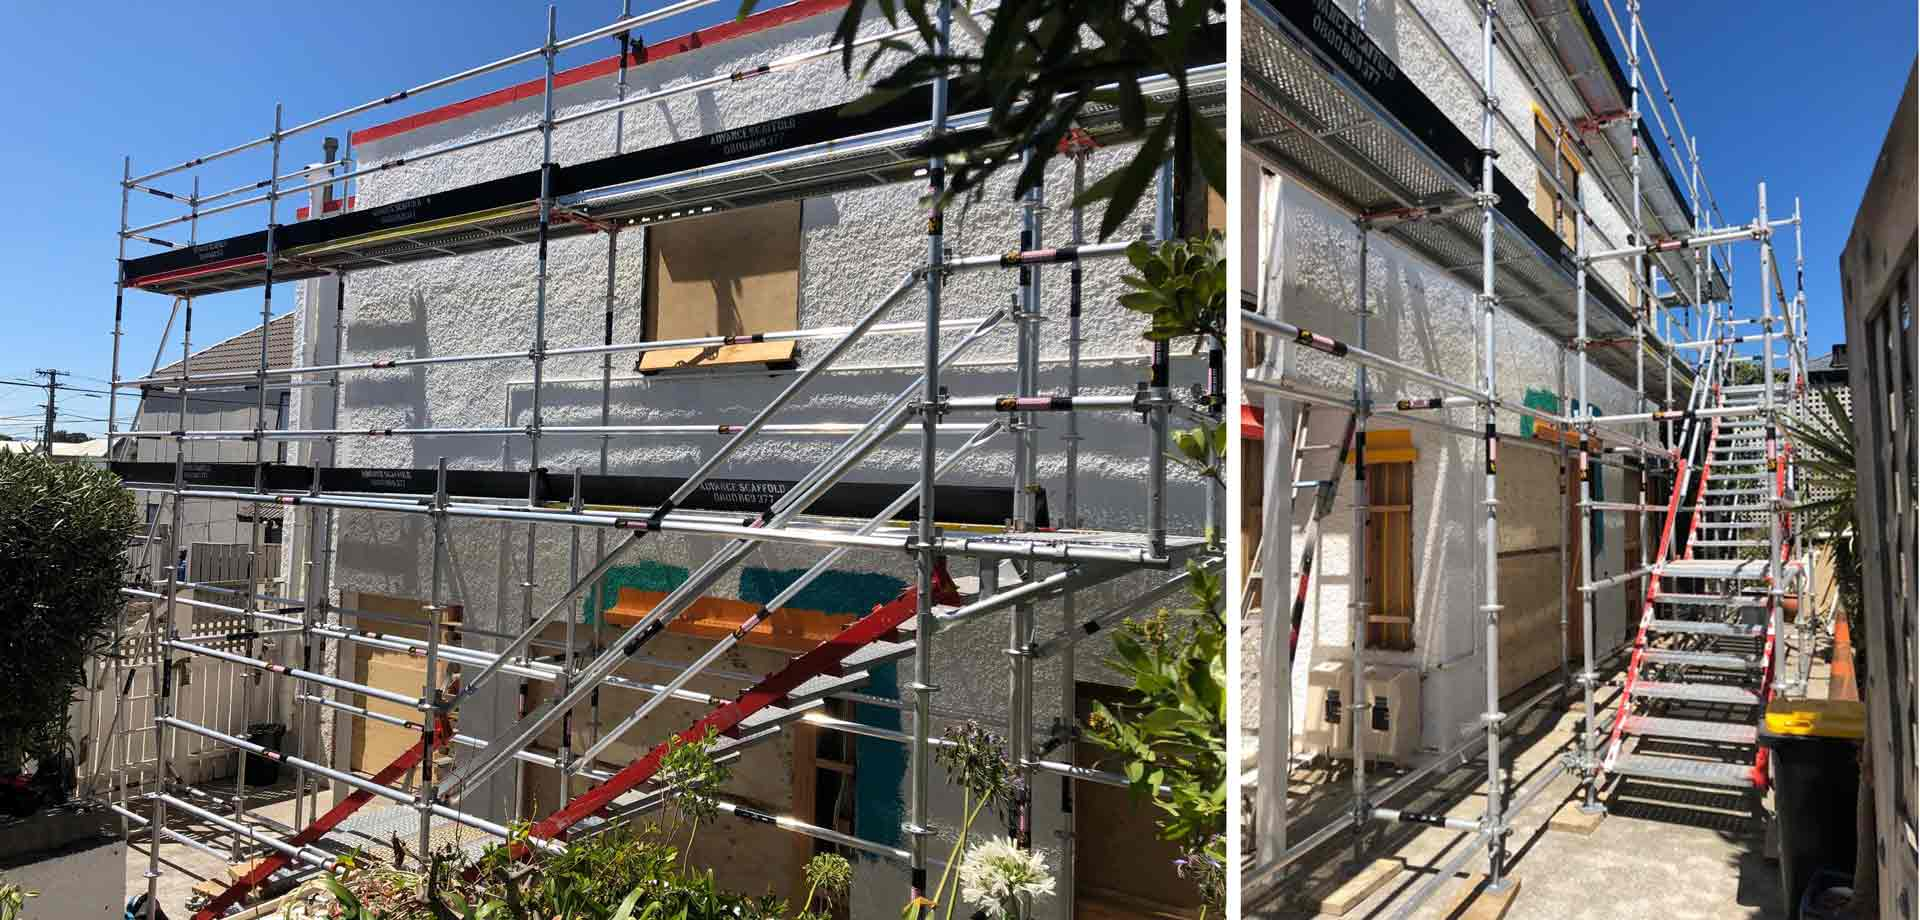 Scaffolding Home renovations